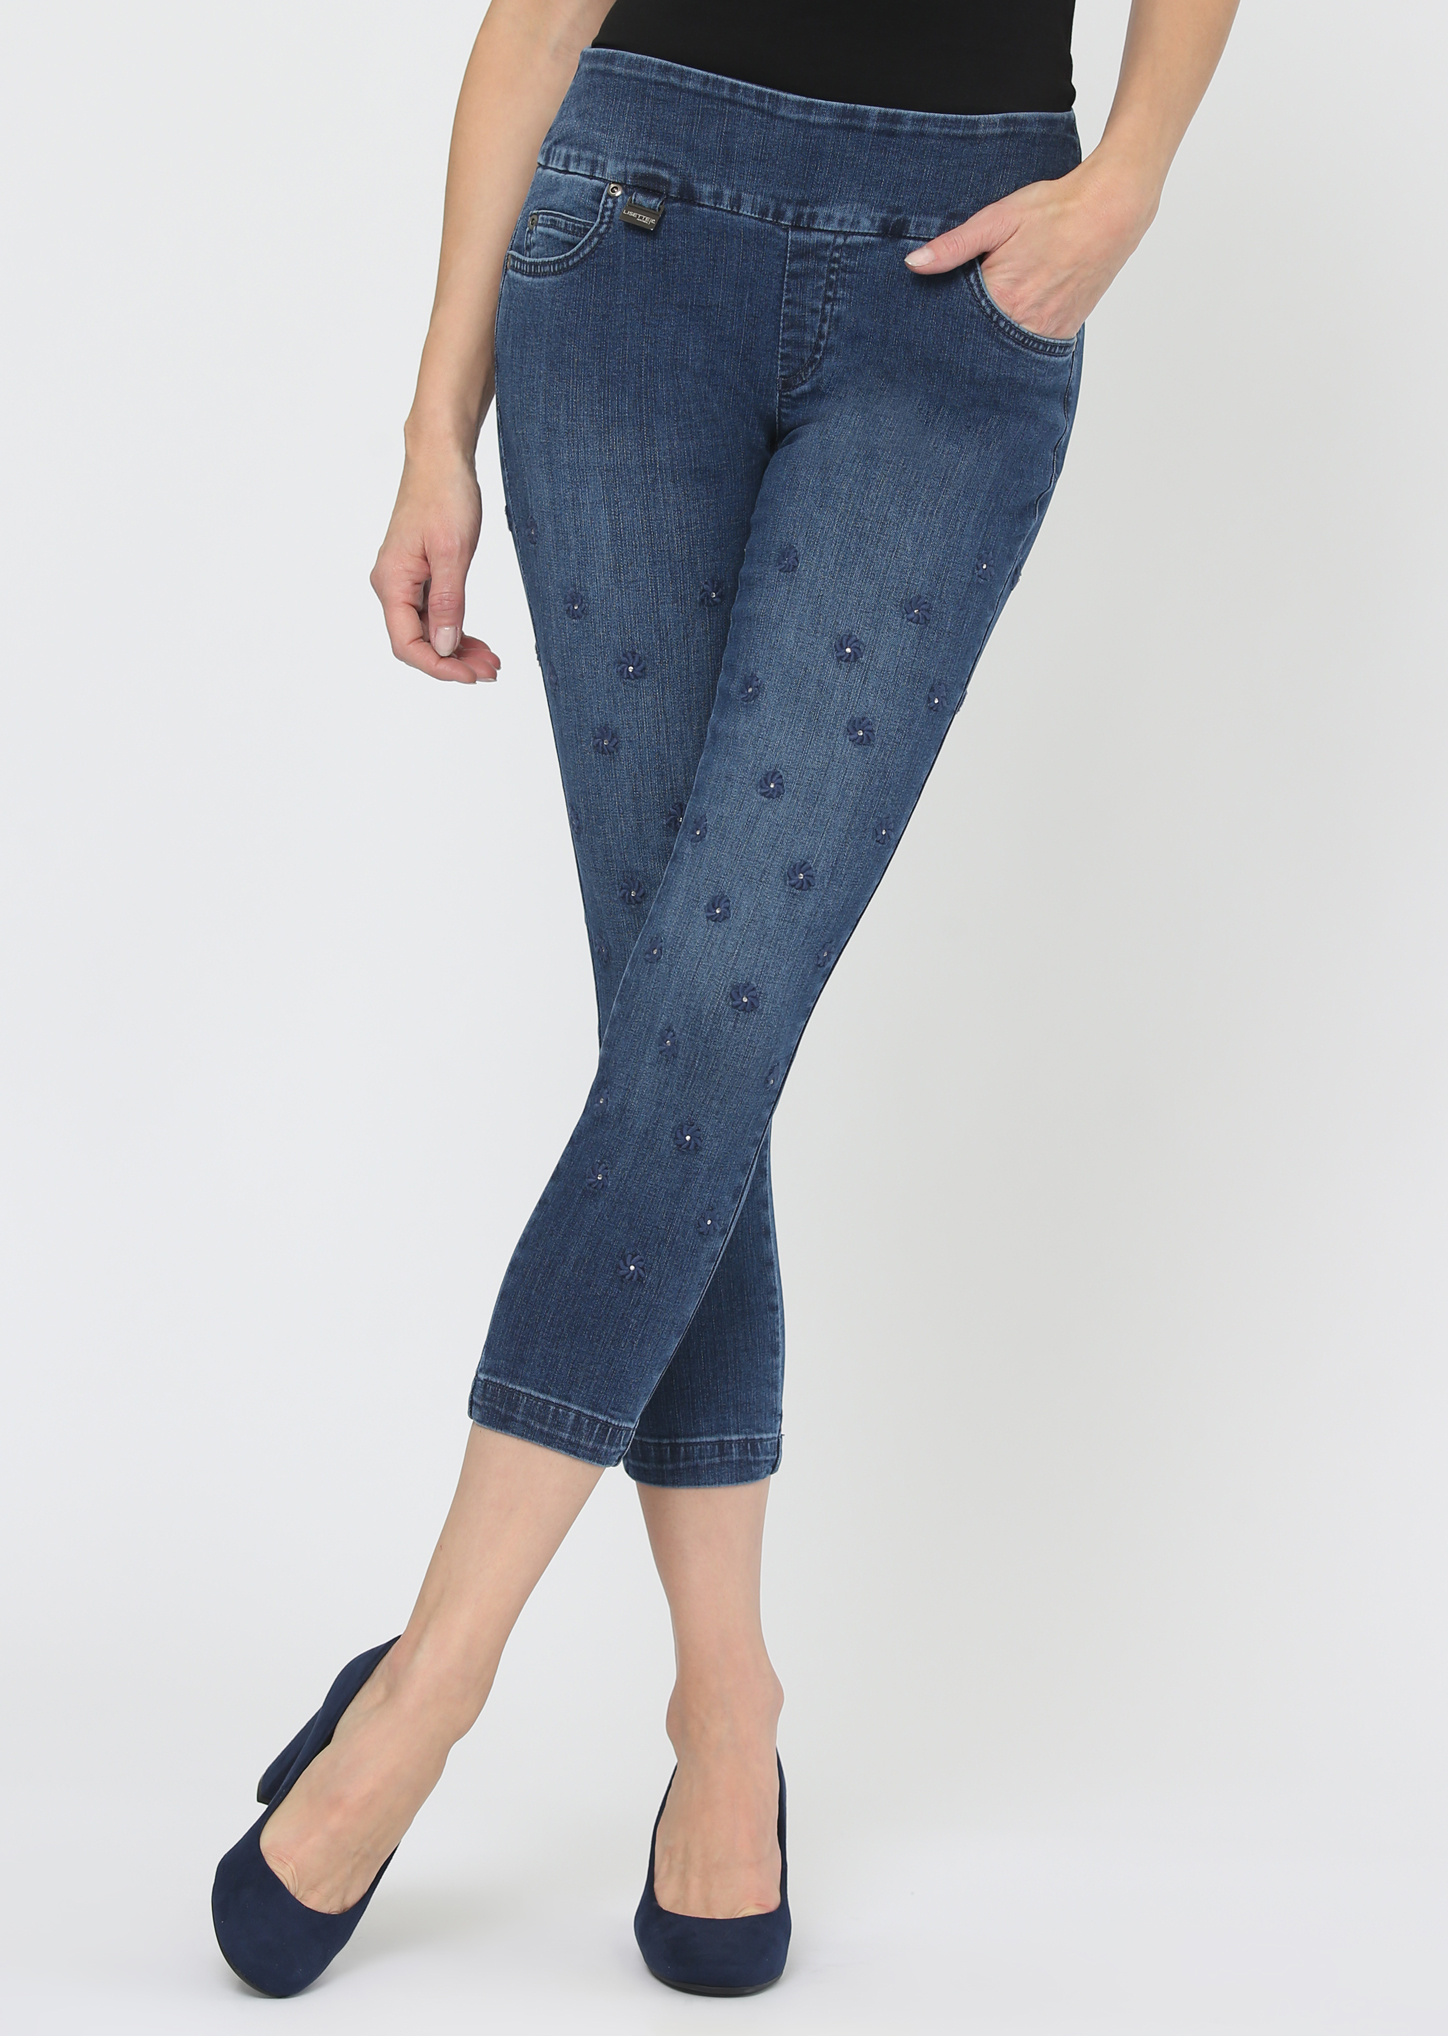 Lisette L. Thinny Crop Pant 455950 Betty Denim, 2 Colors Available